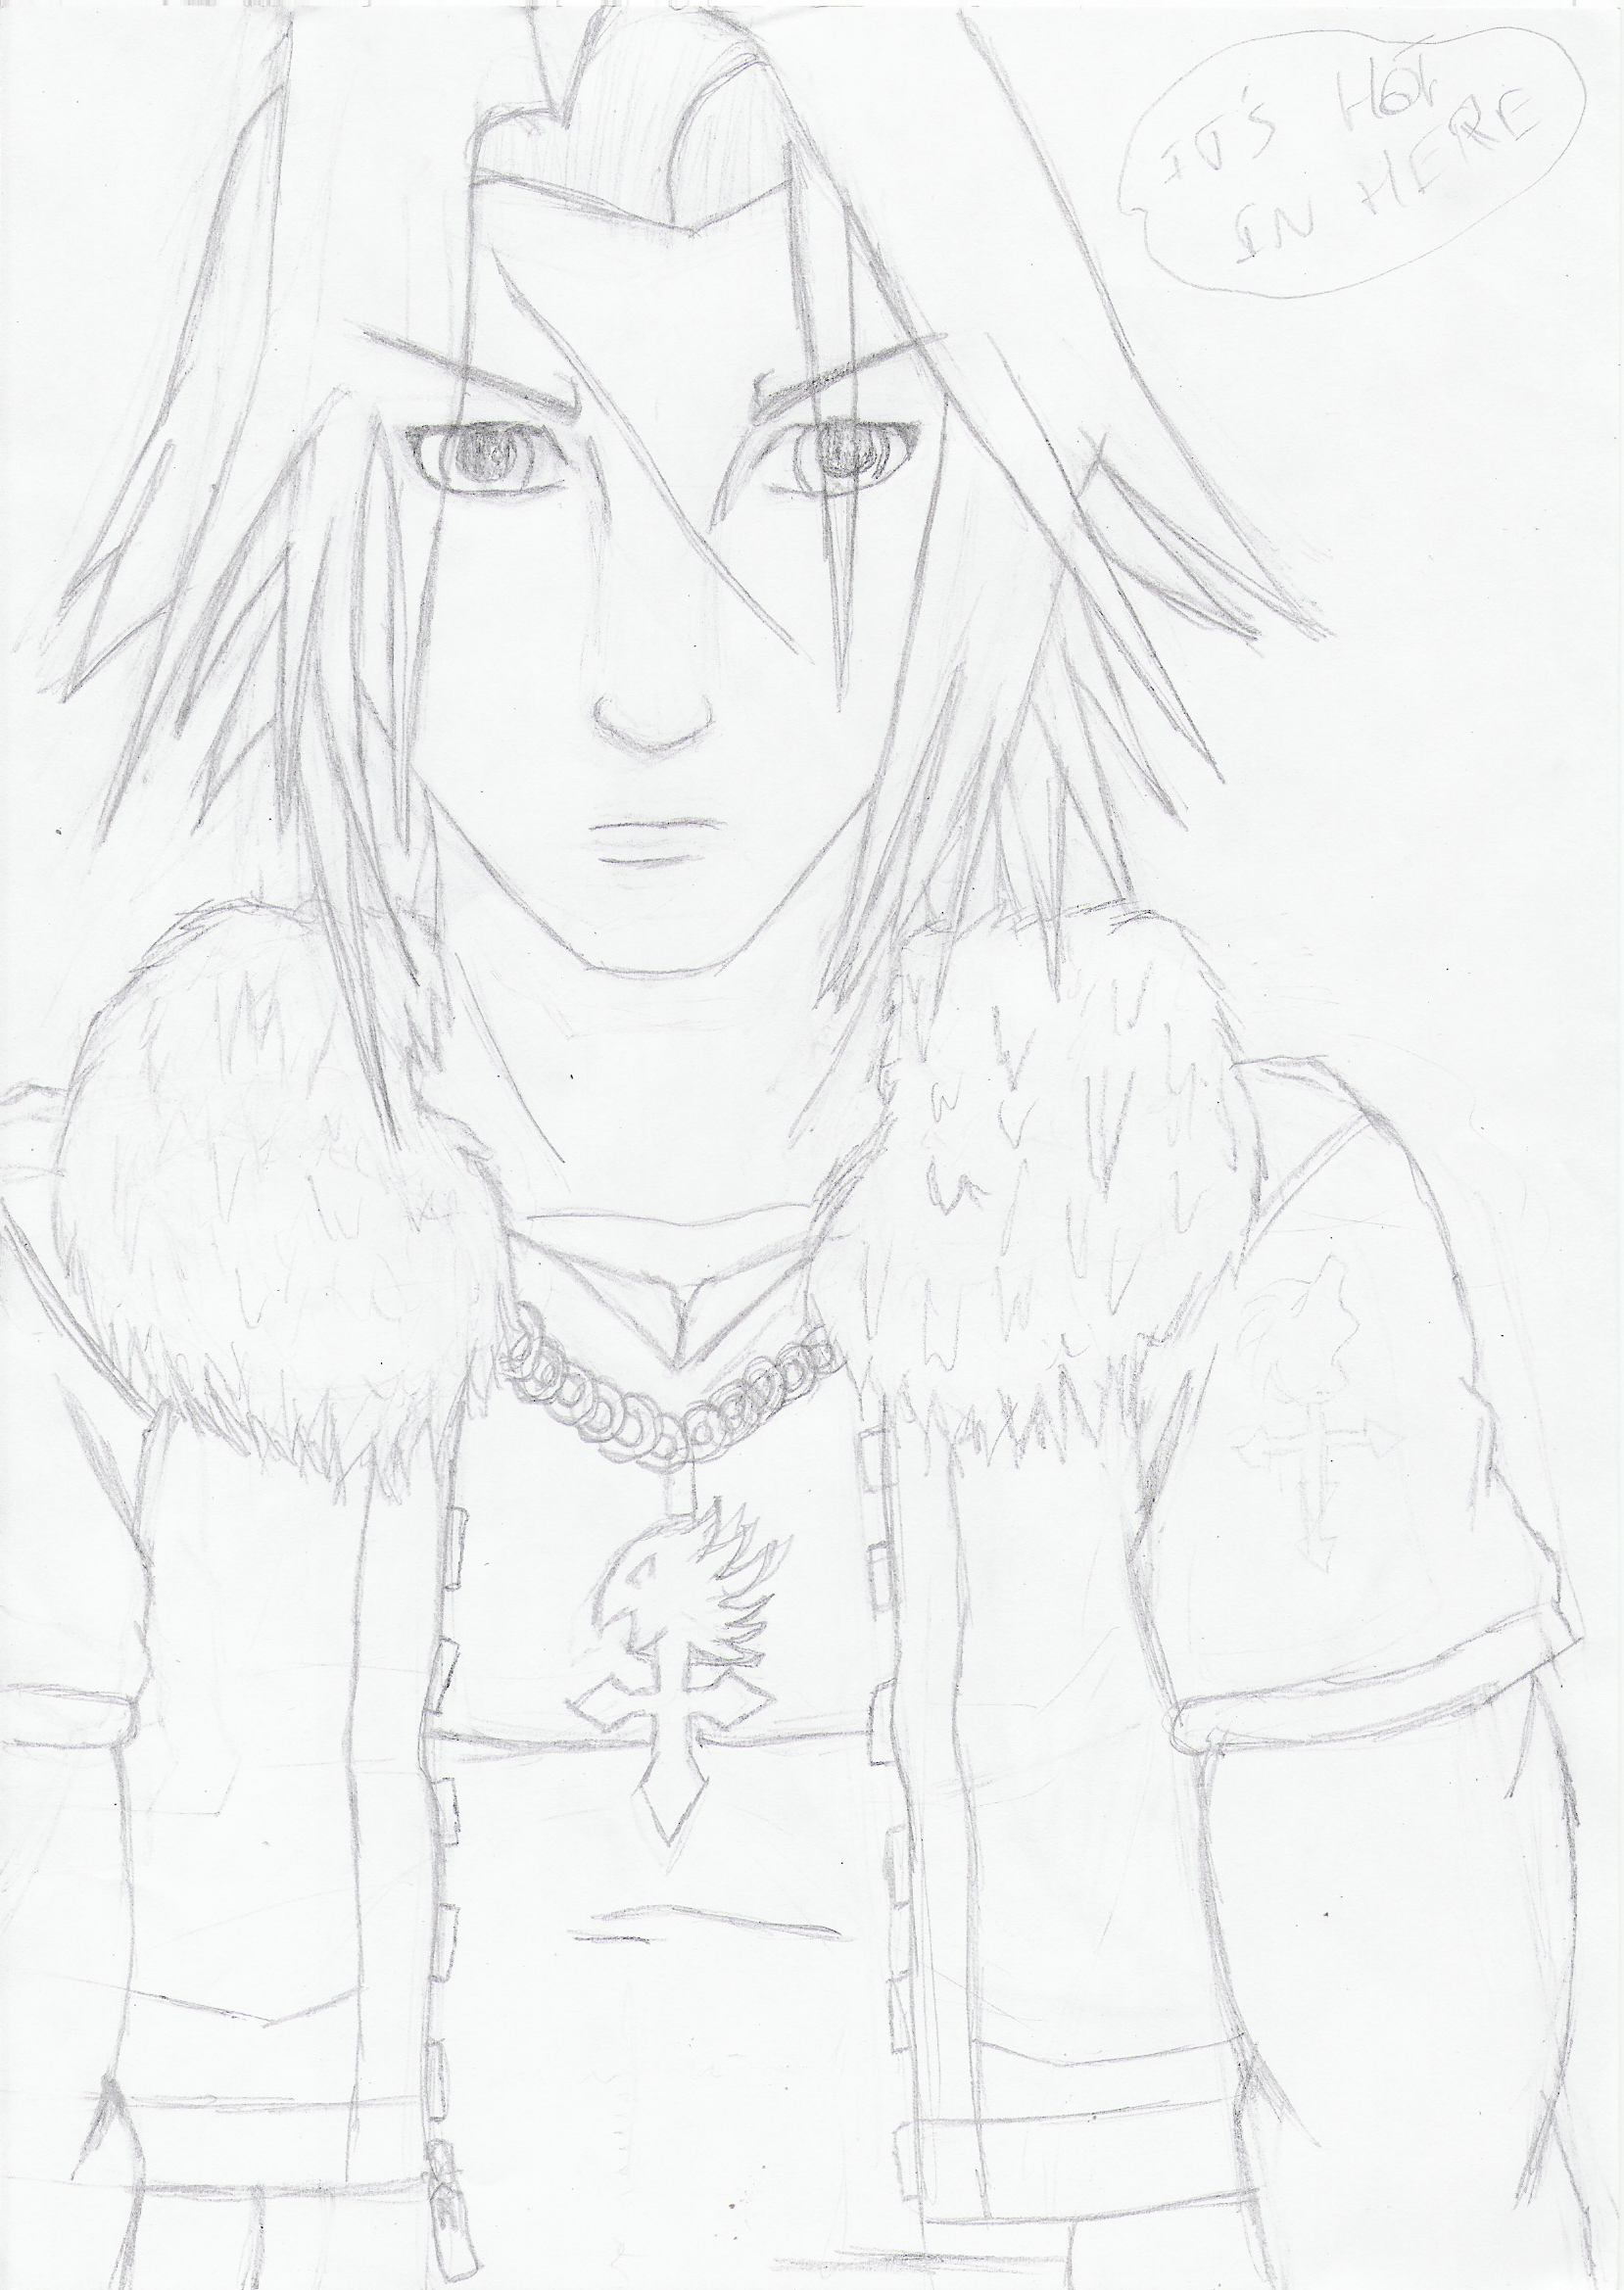 squall leonheart (KH2 version)